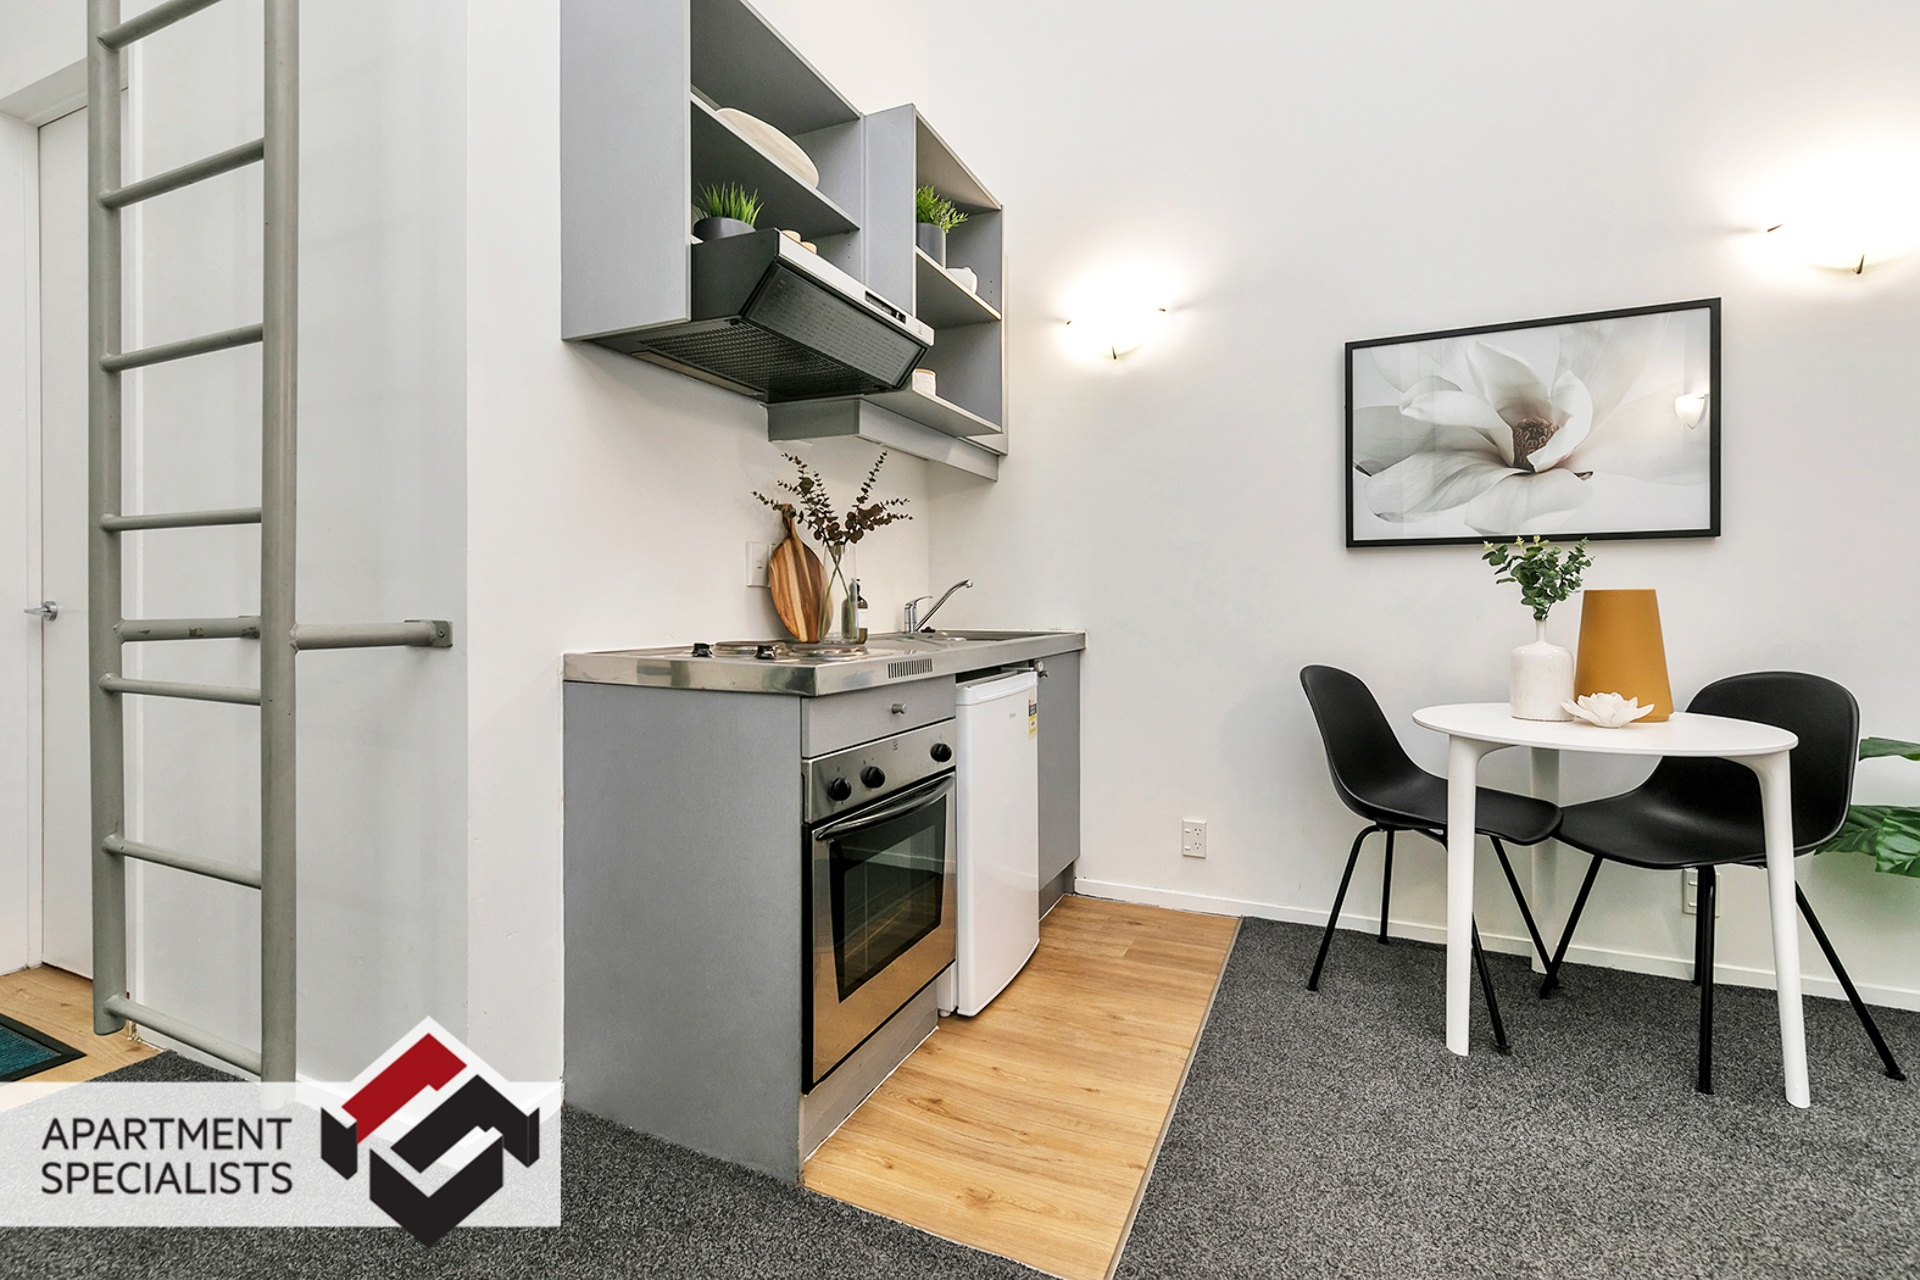 4 | 105 Queen Street, City Centre | Apartment Specialists